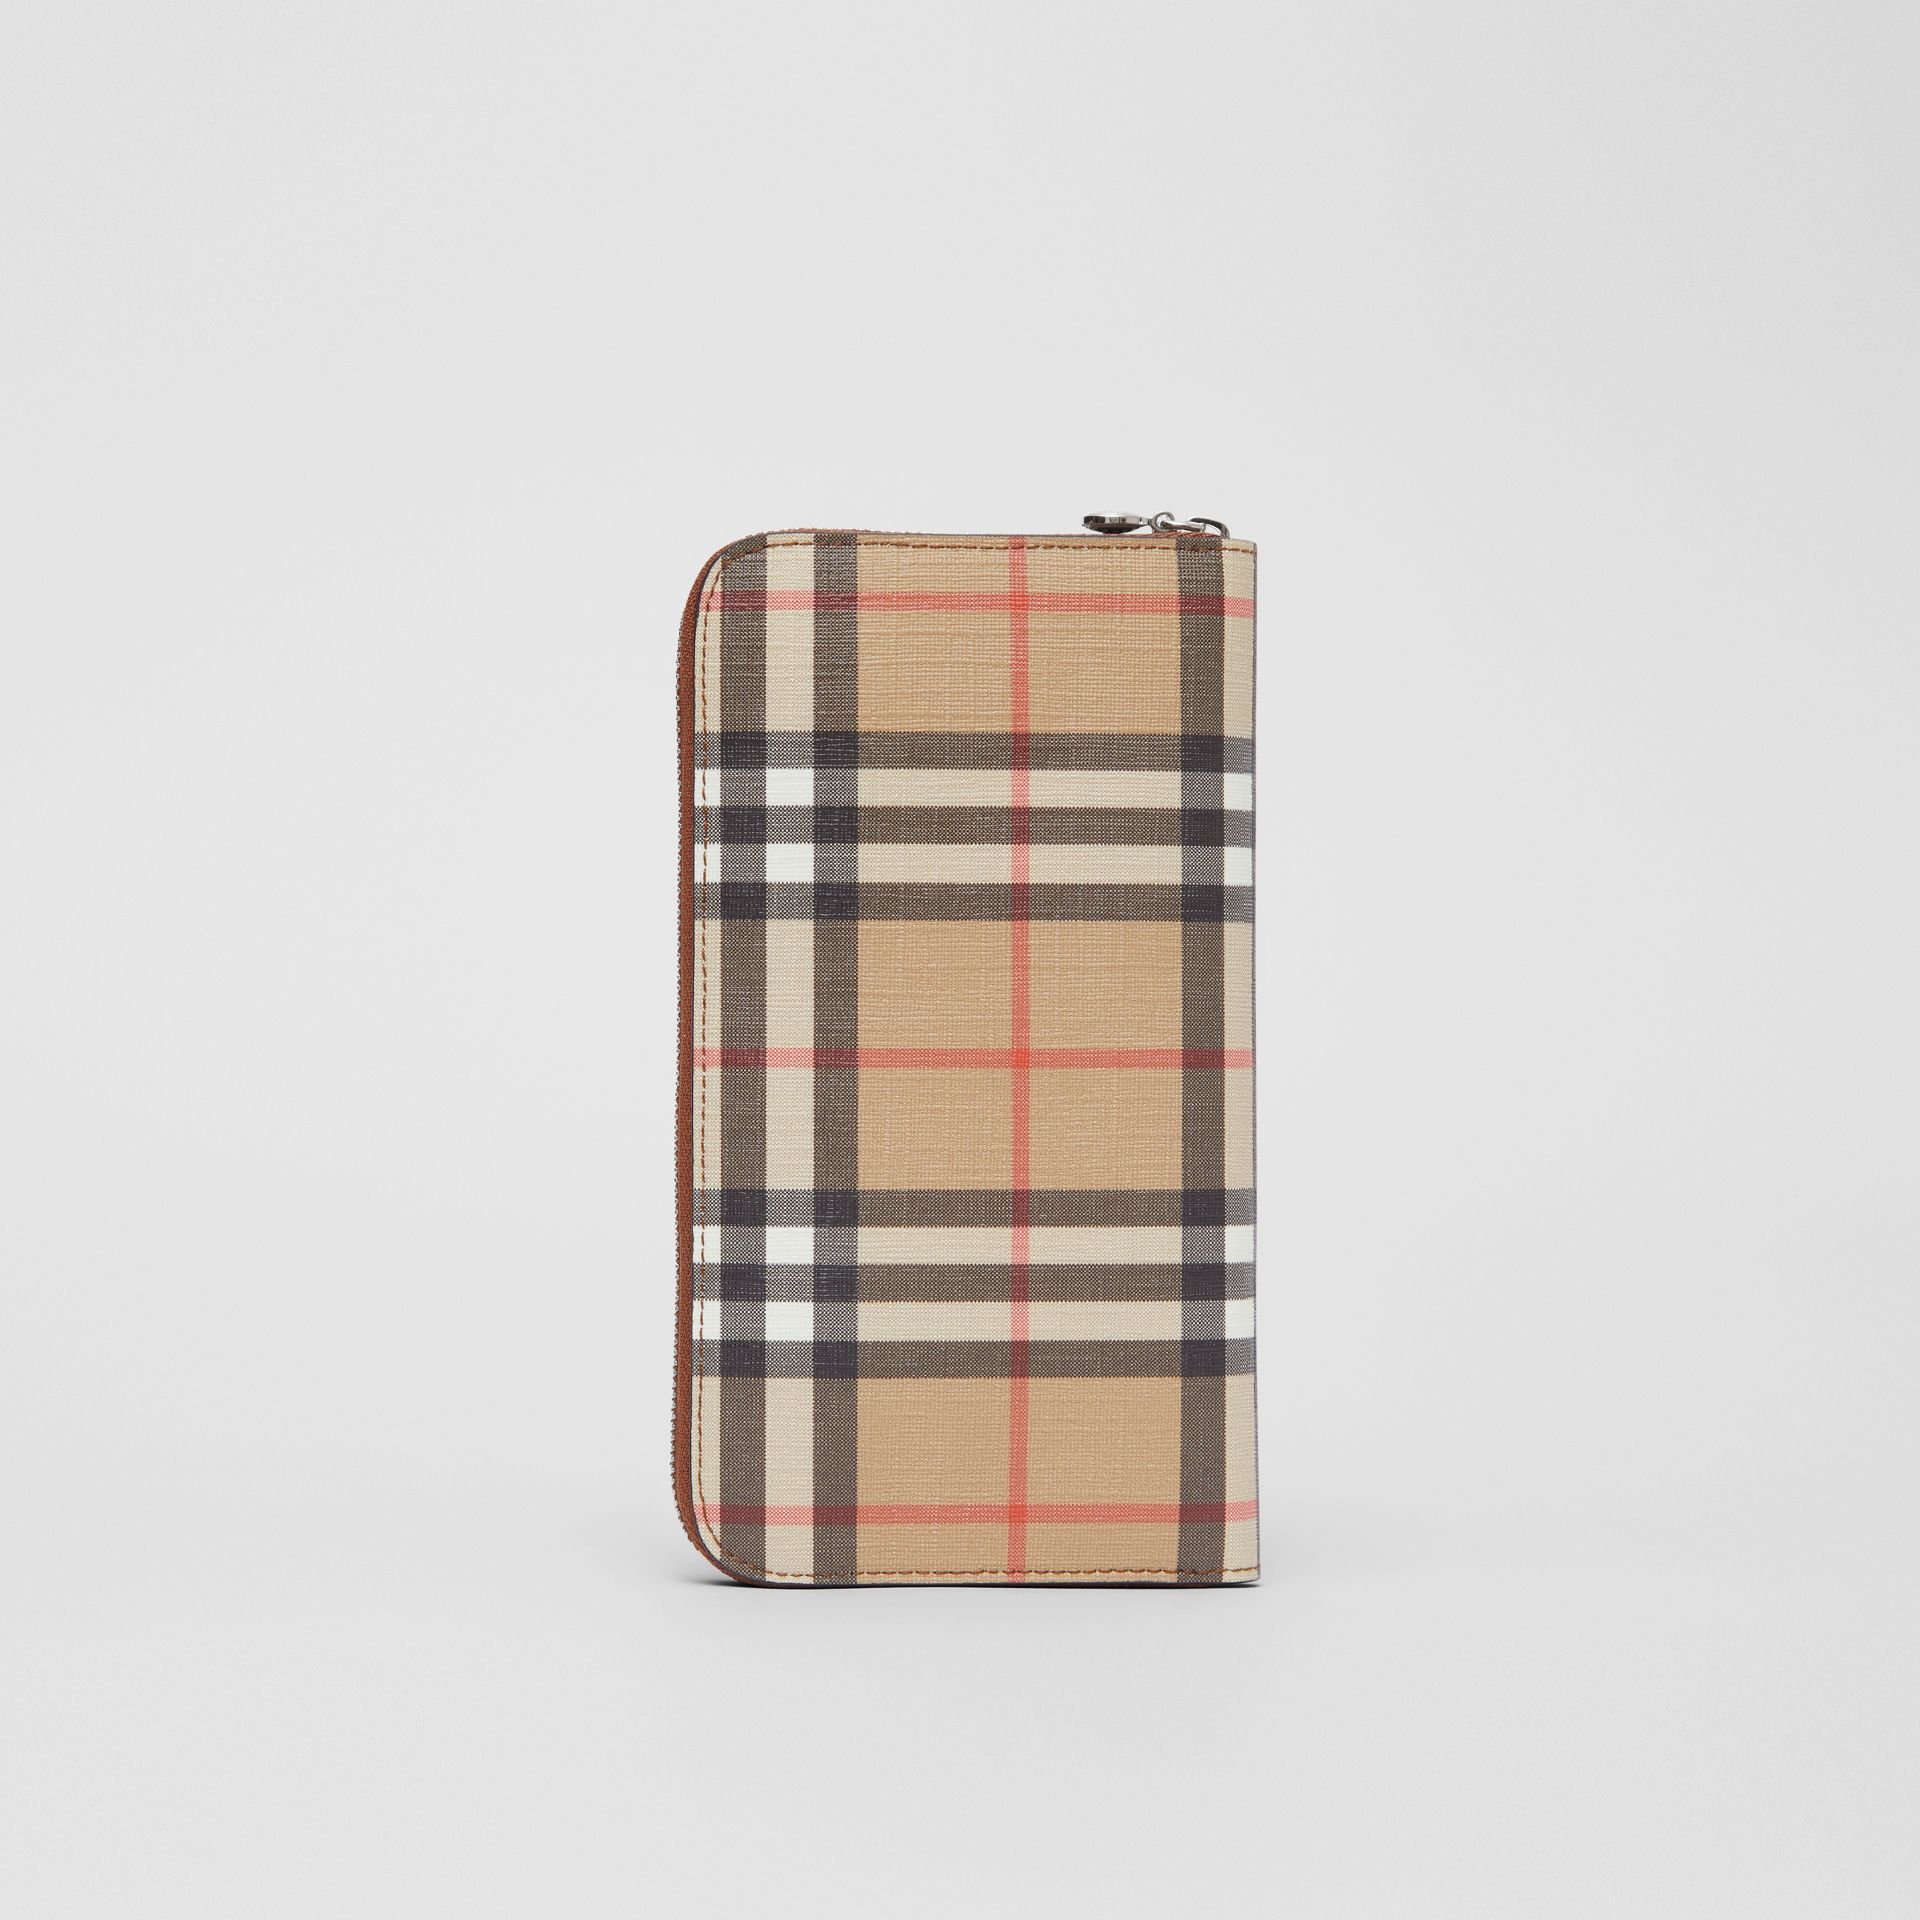 Vintage Check E-canvas Ziparound Wallet in Malt Brown - Women | Burberry - gallery image 4